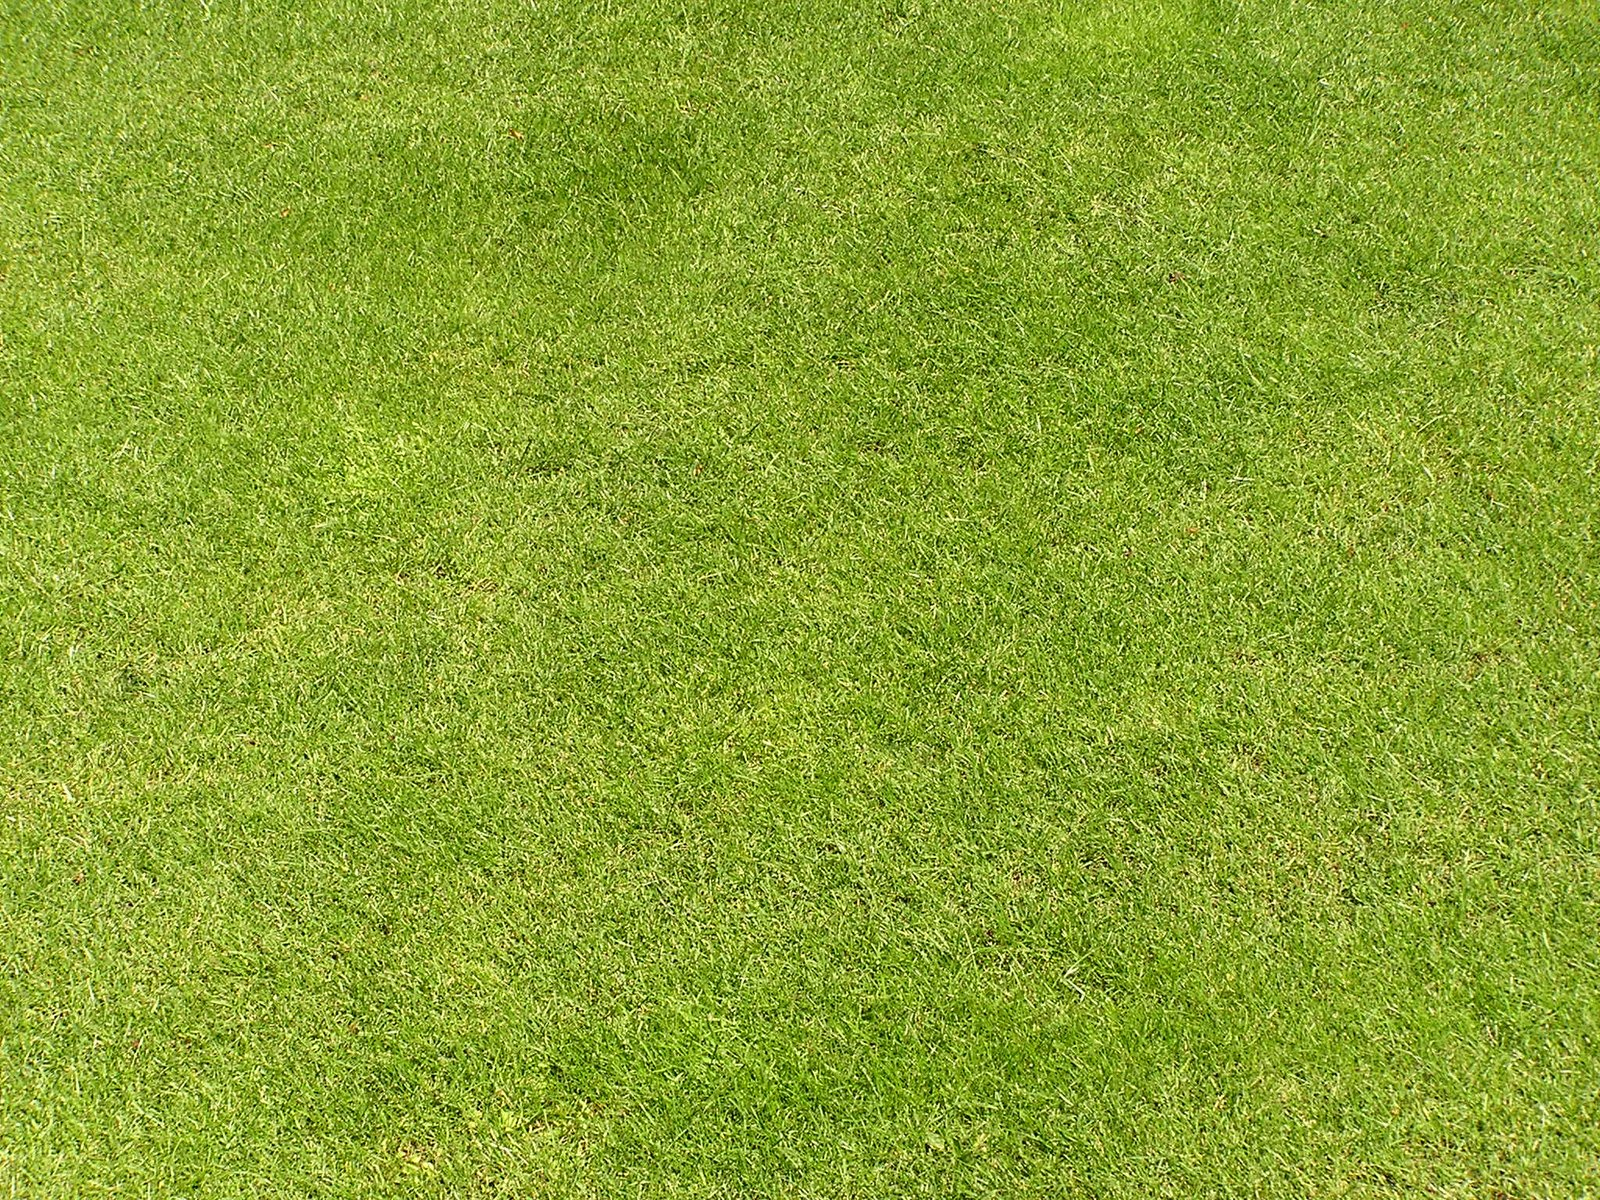 Free Grass Texture Stock Photo Freeimages Com